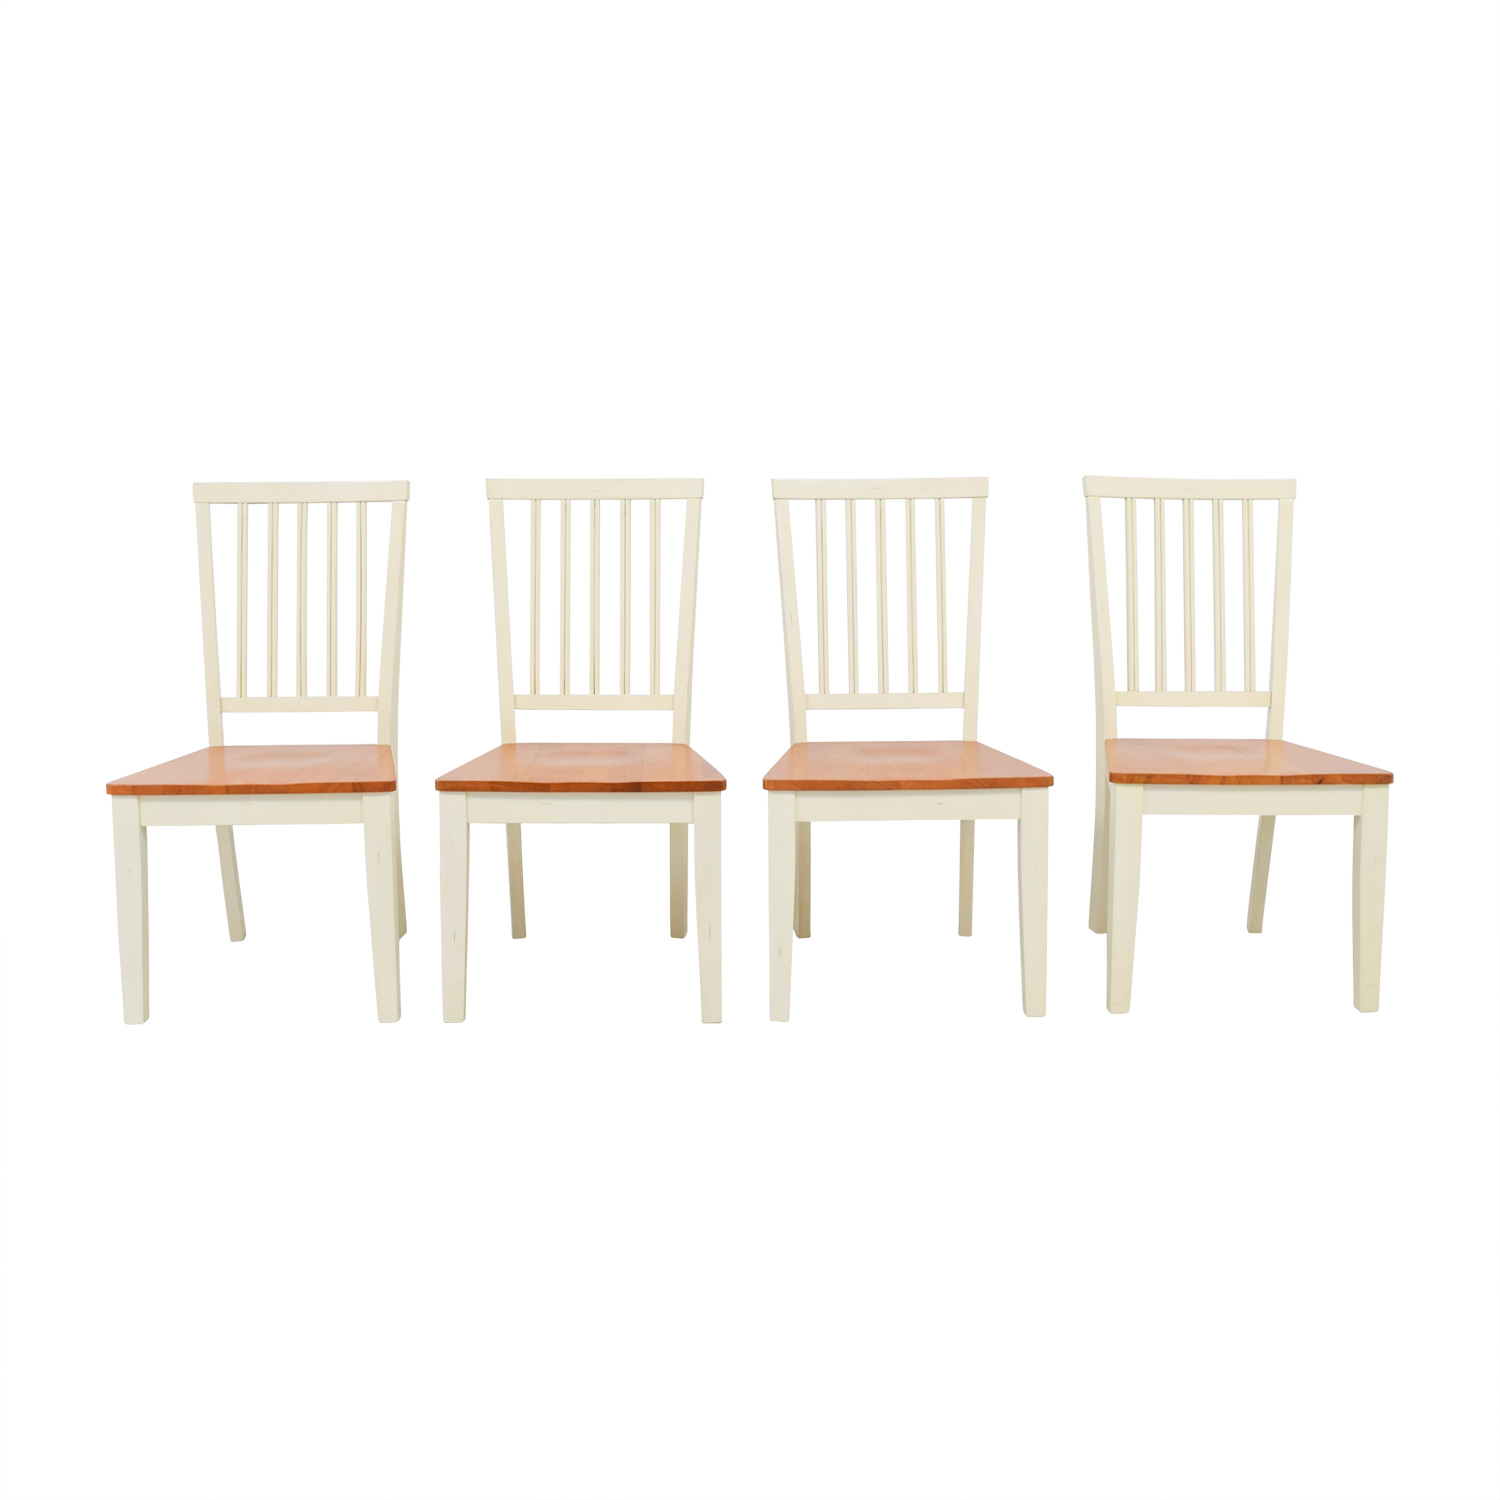 Antique White Dining Chairs 35 Off Raymour Flanigan Raymour Flanigan Ashby Cherry And Antique White Dining Chairs Chairs